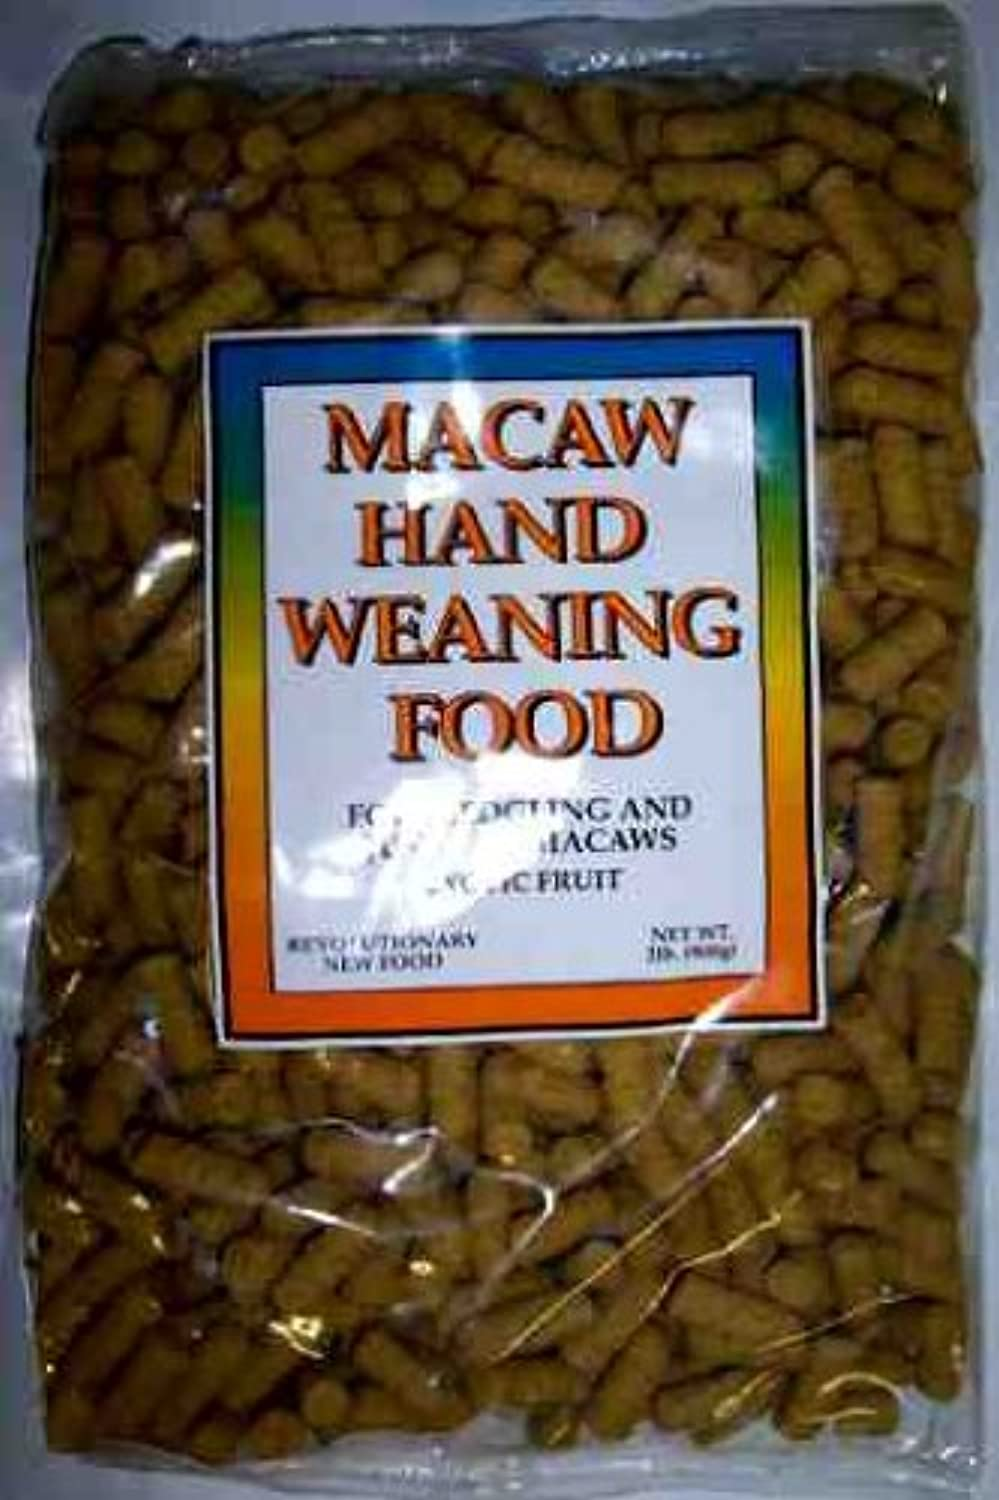 Scenic Hand Weaning Parred Food Pellets Macaw 2 lb nrbppe7629-New